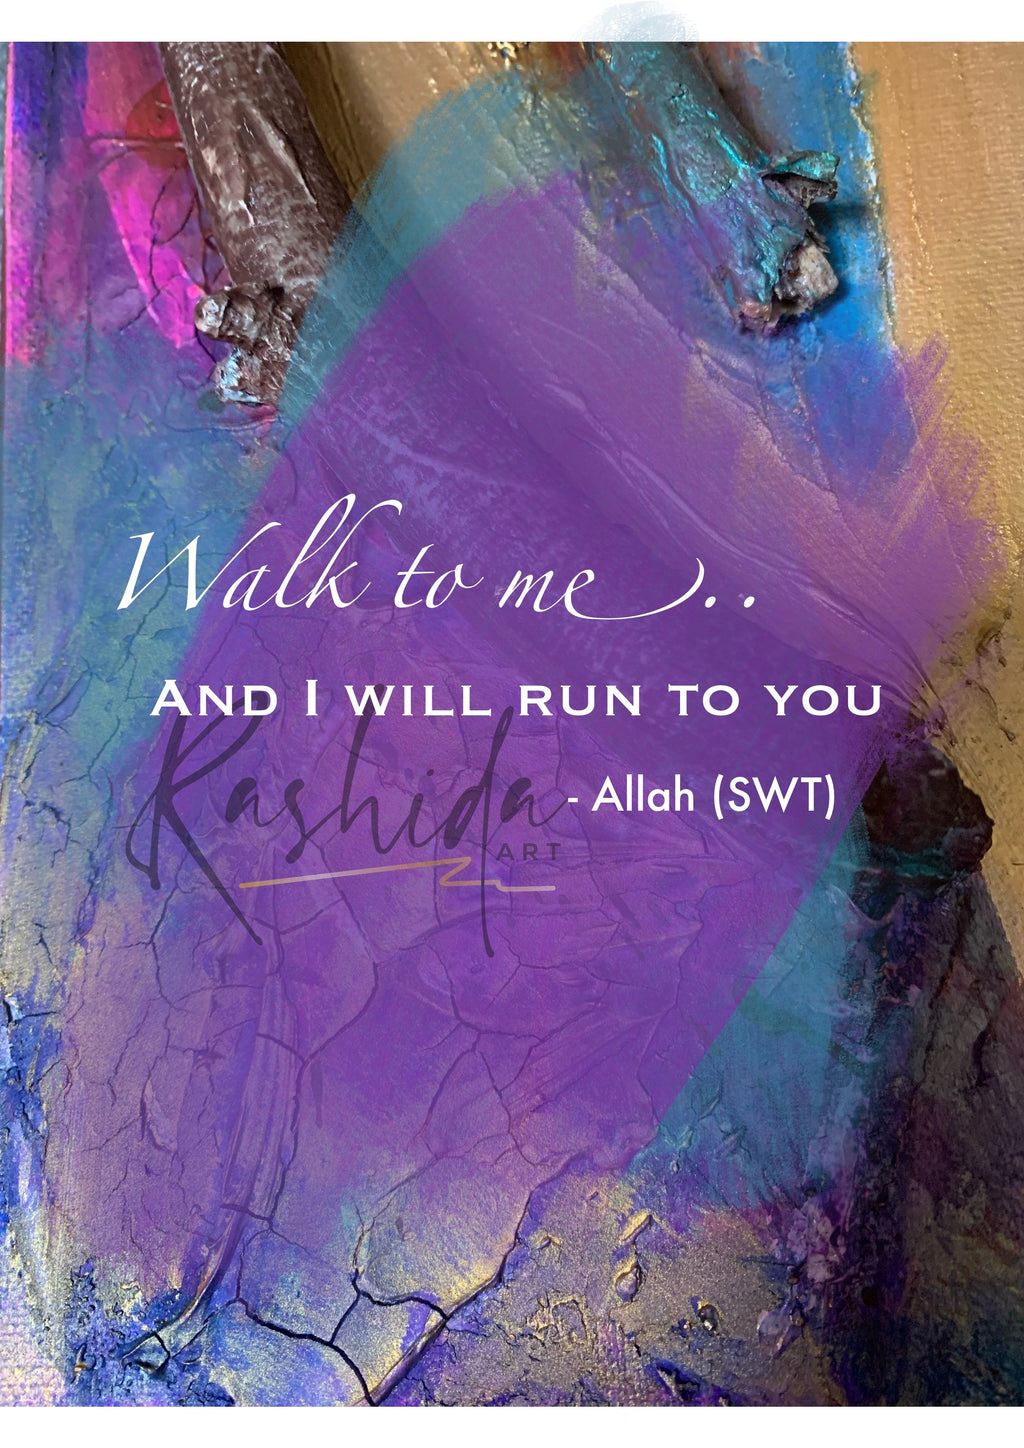 Walk to me - Rashida Art